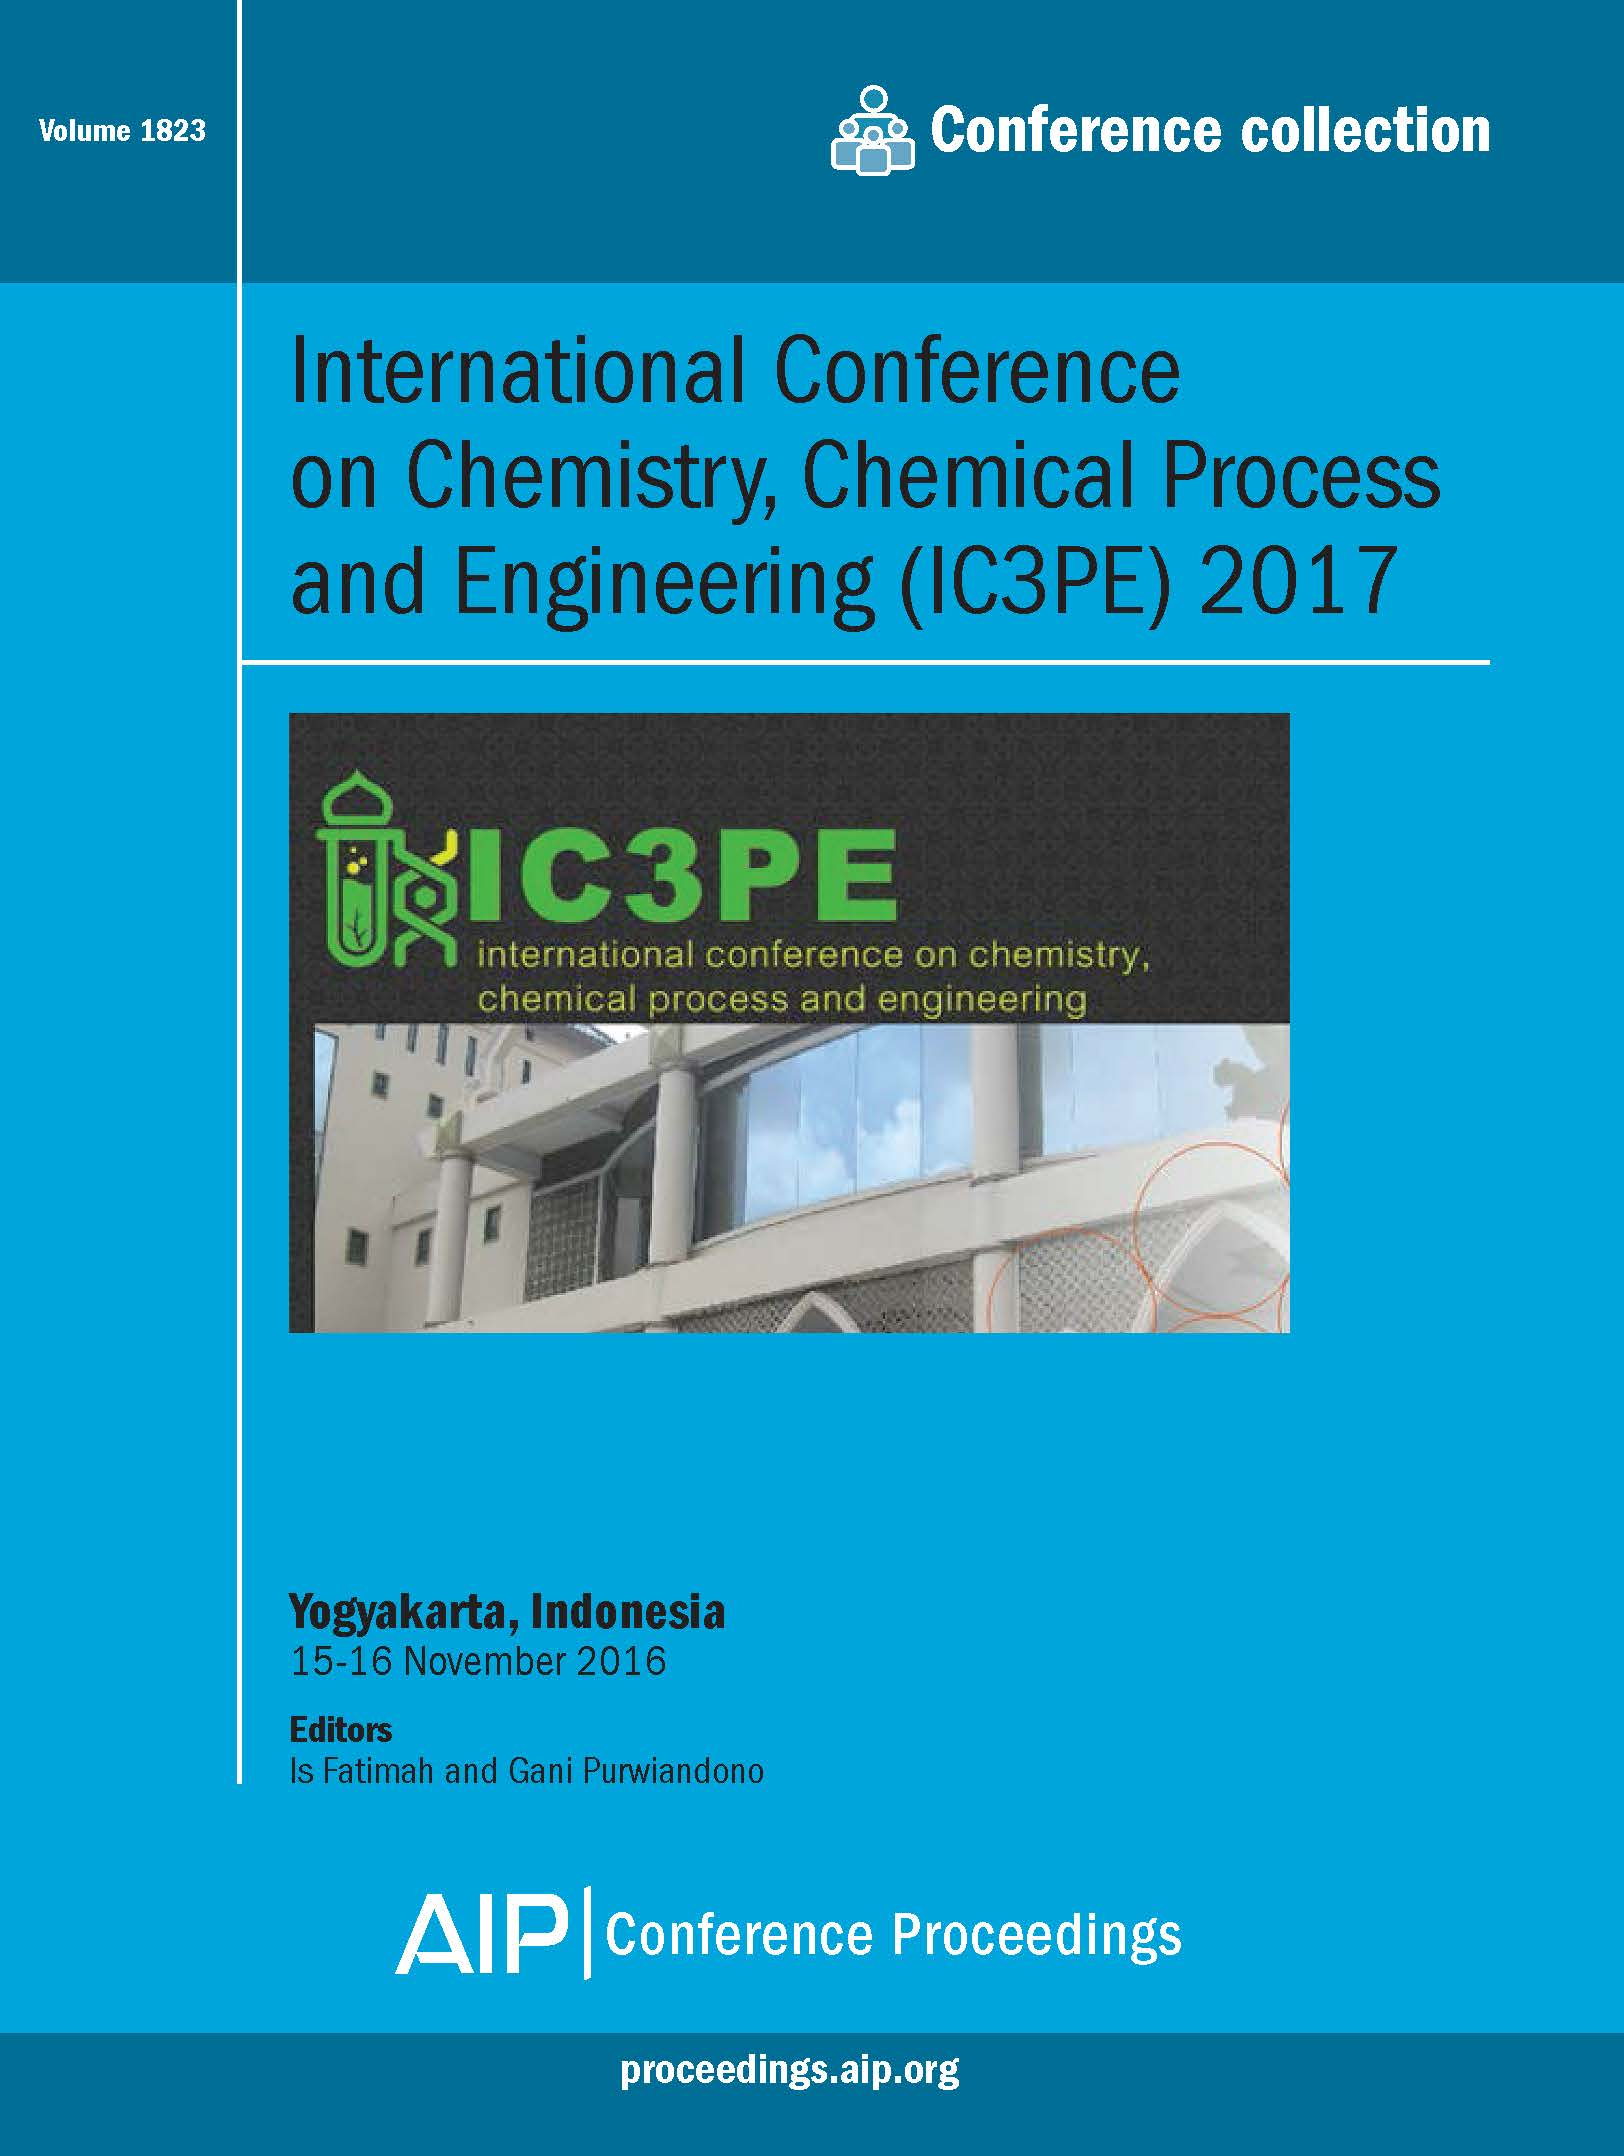 Volume 1823: International Conference on Chemistry, Chemical Process